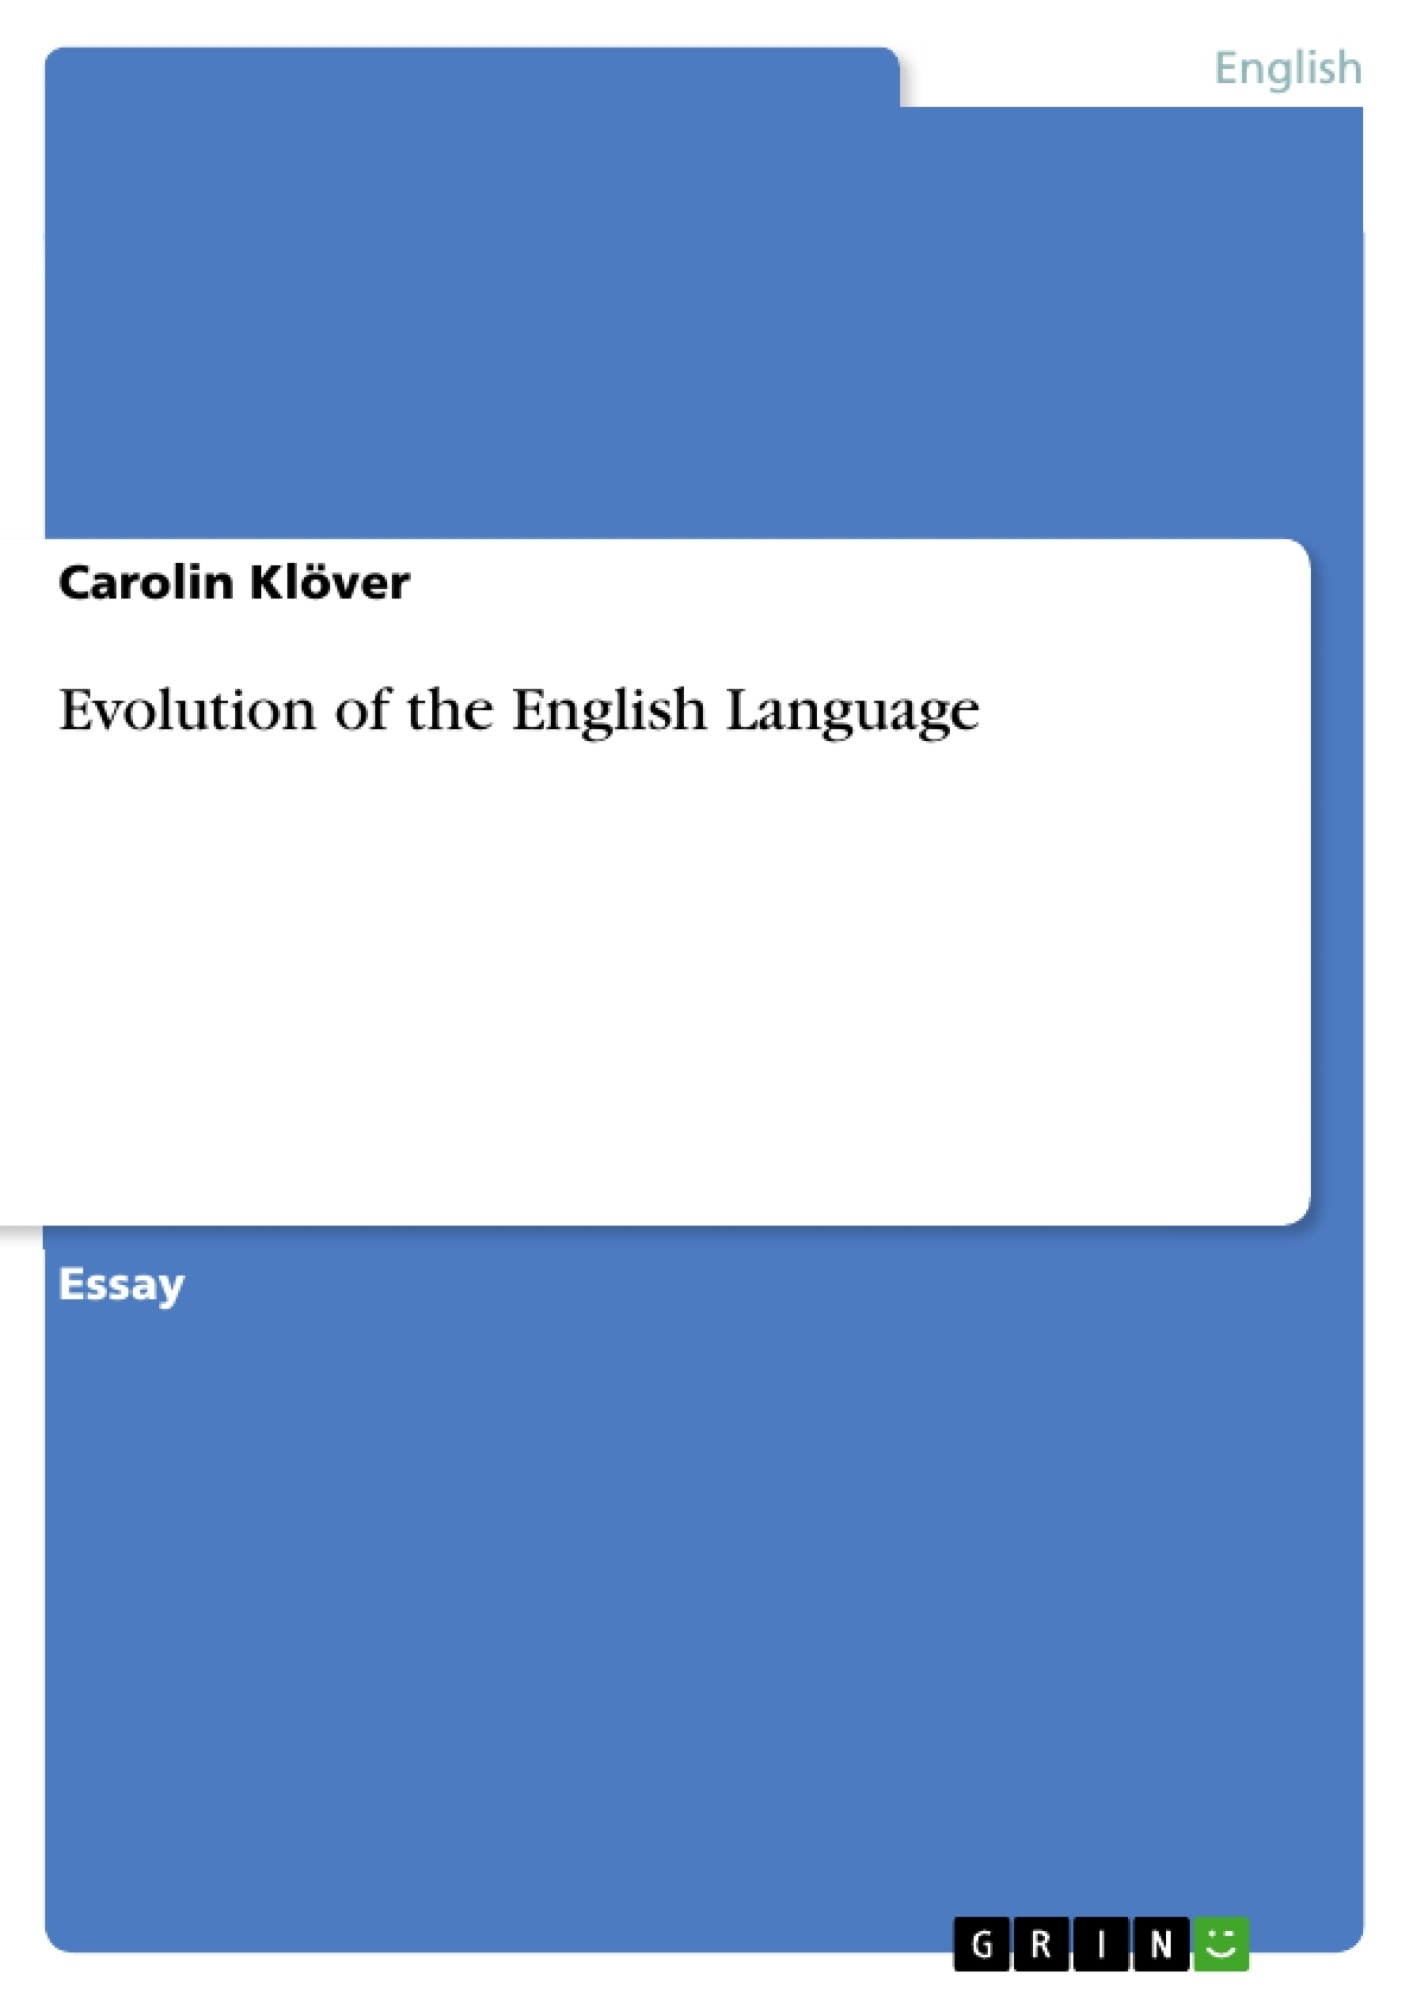 How English Evolved Into a Modern Language